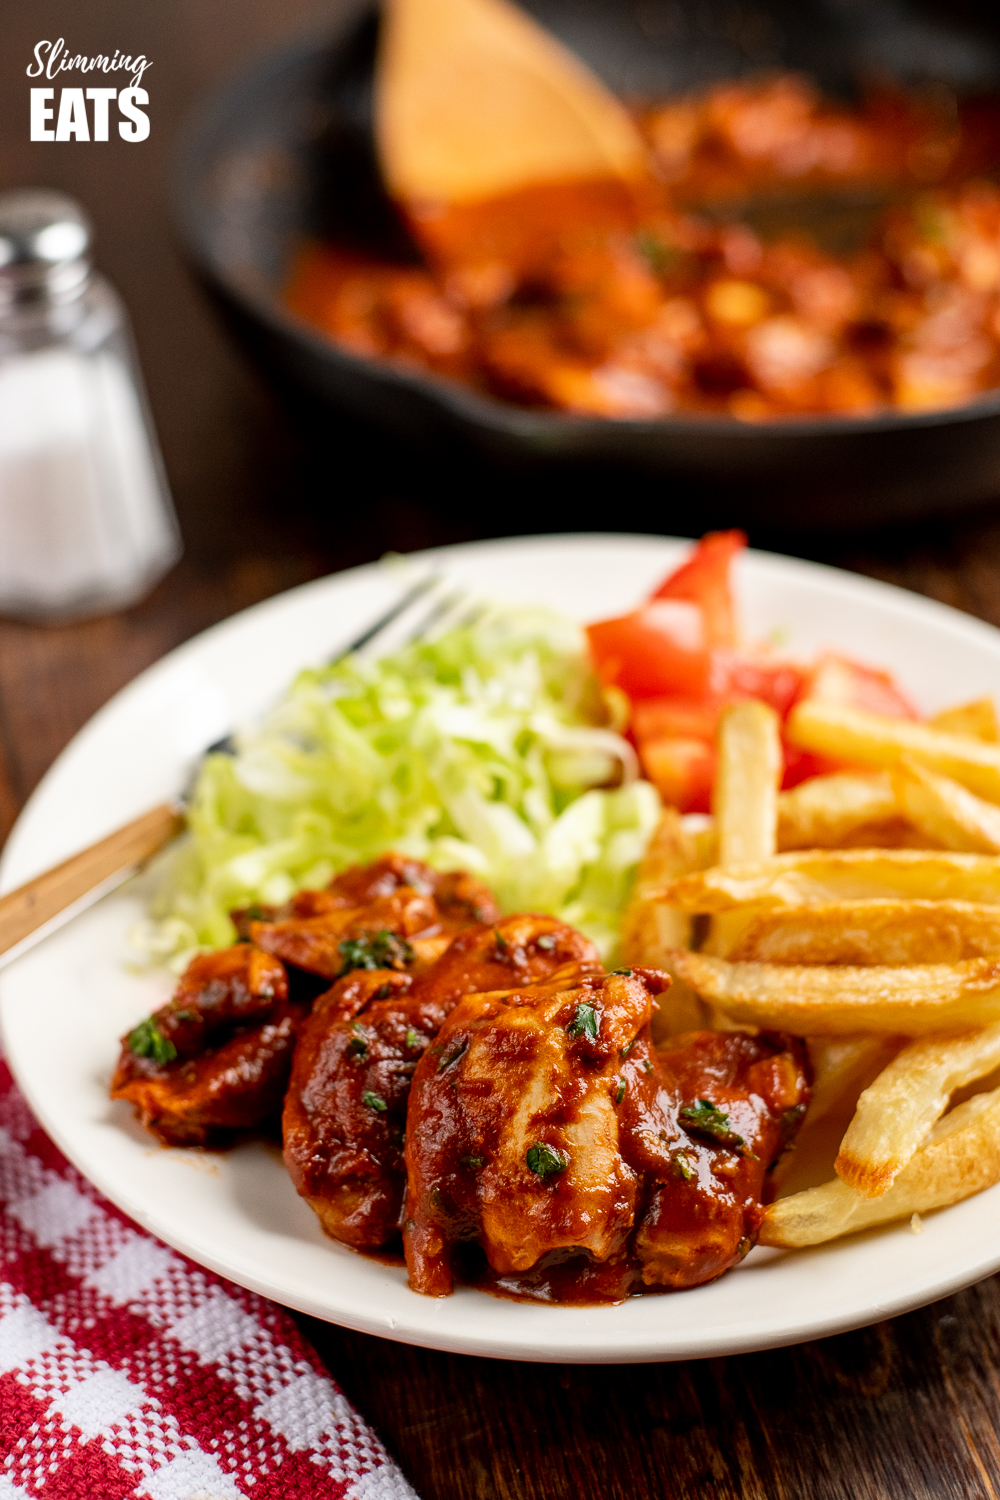 Diet Coke chicken on white plate with salad and chips and frying pan in background